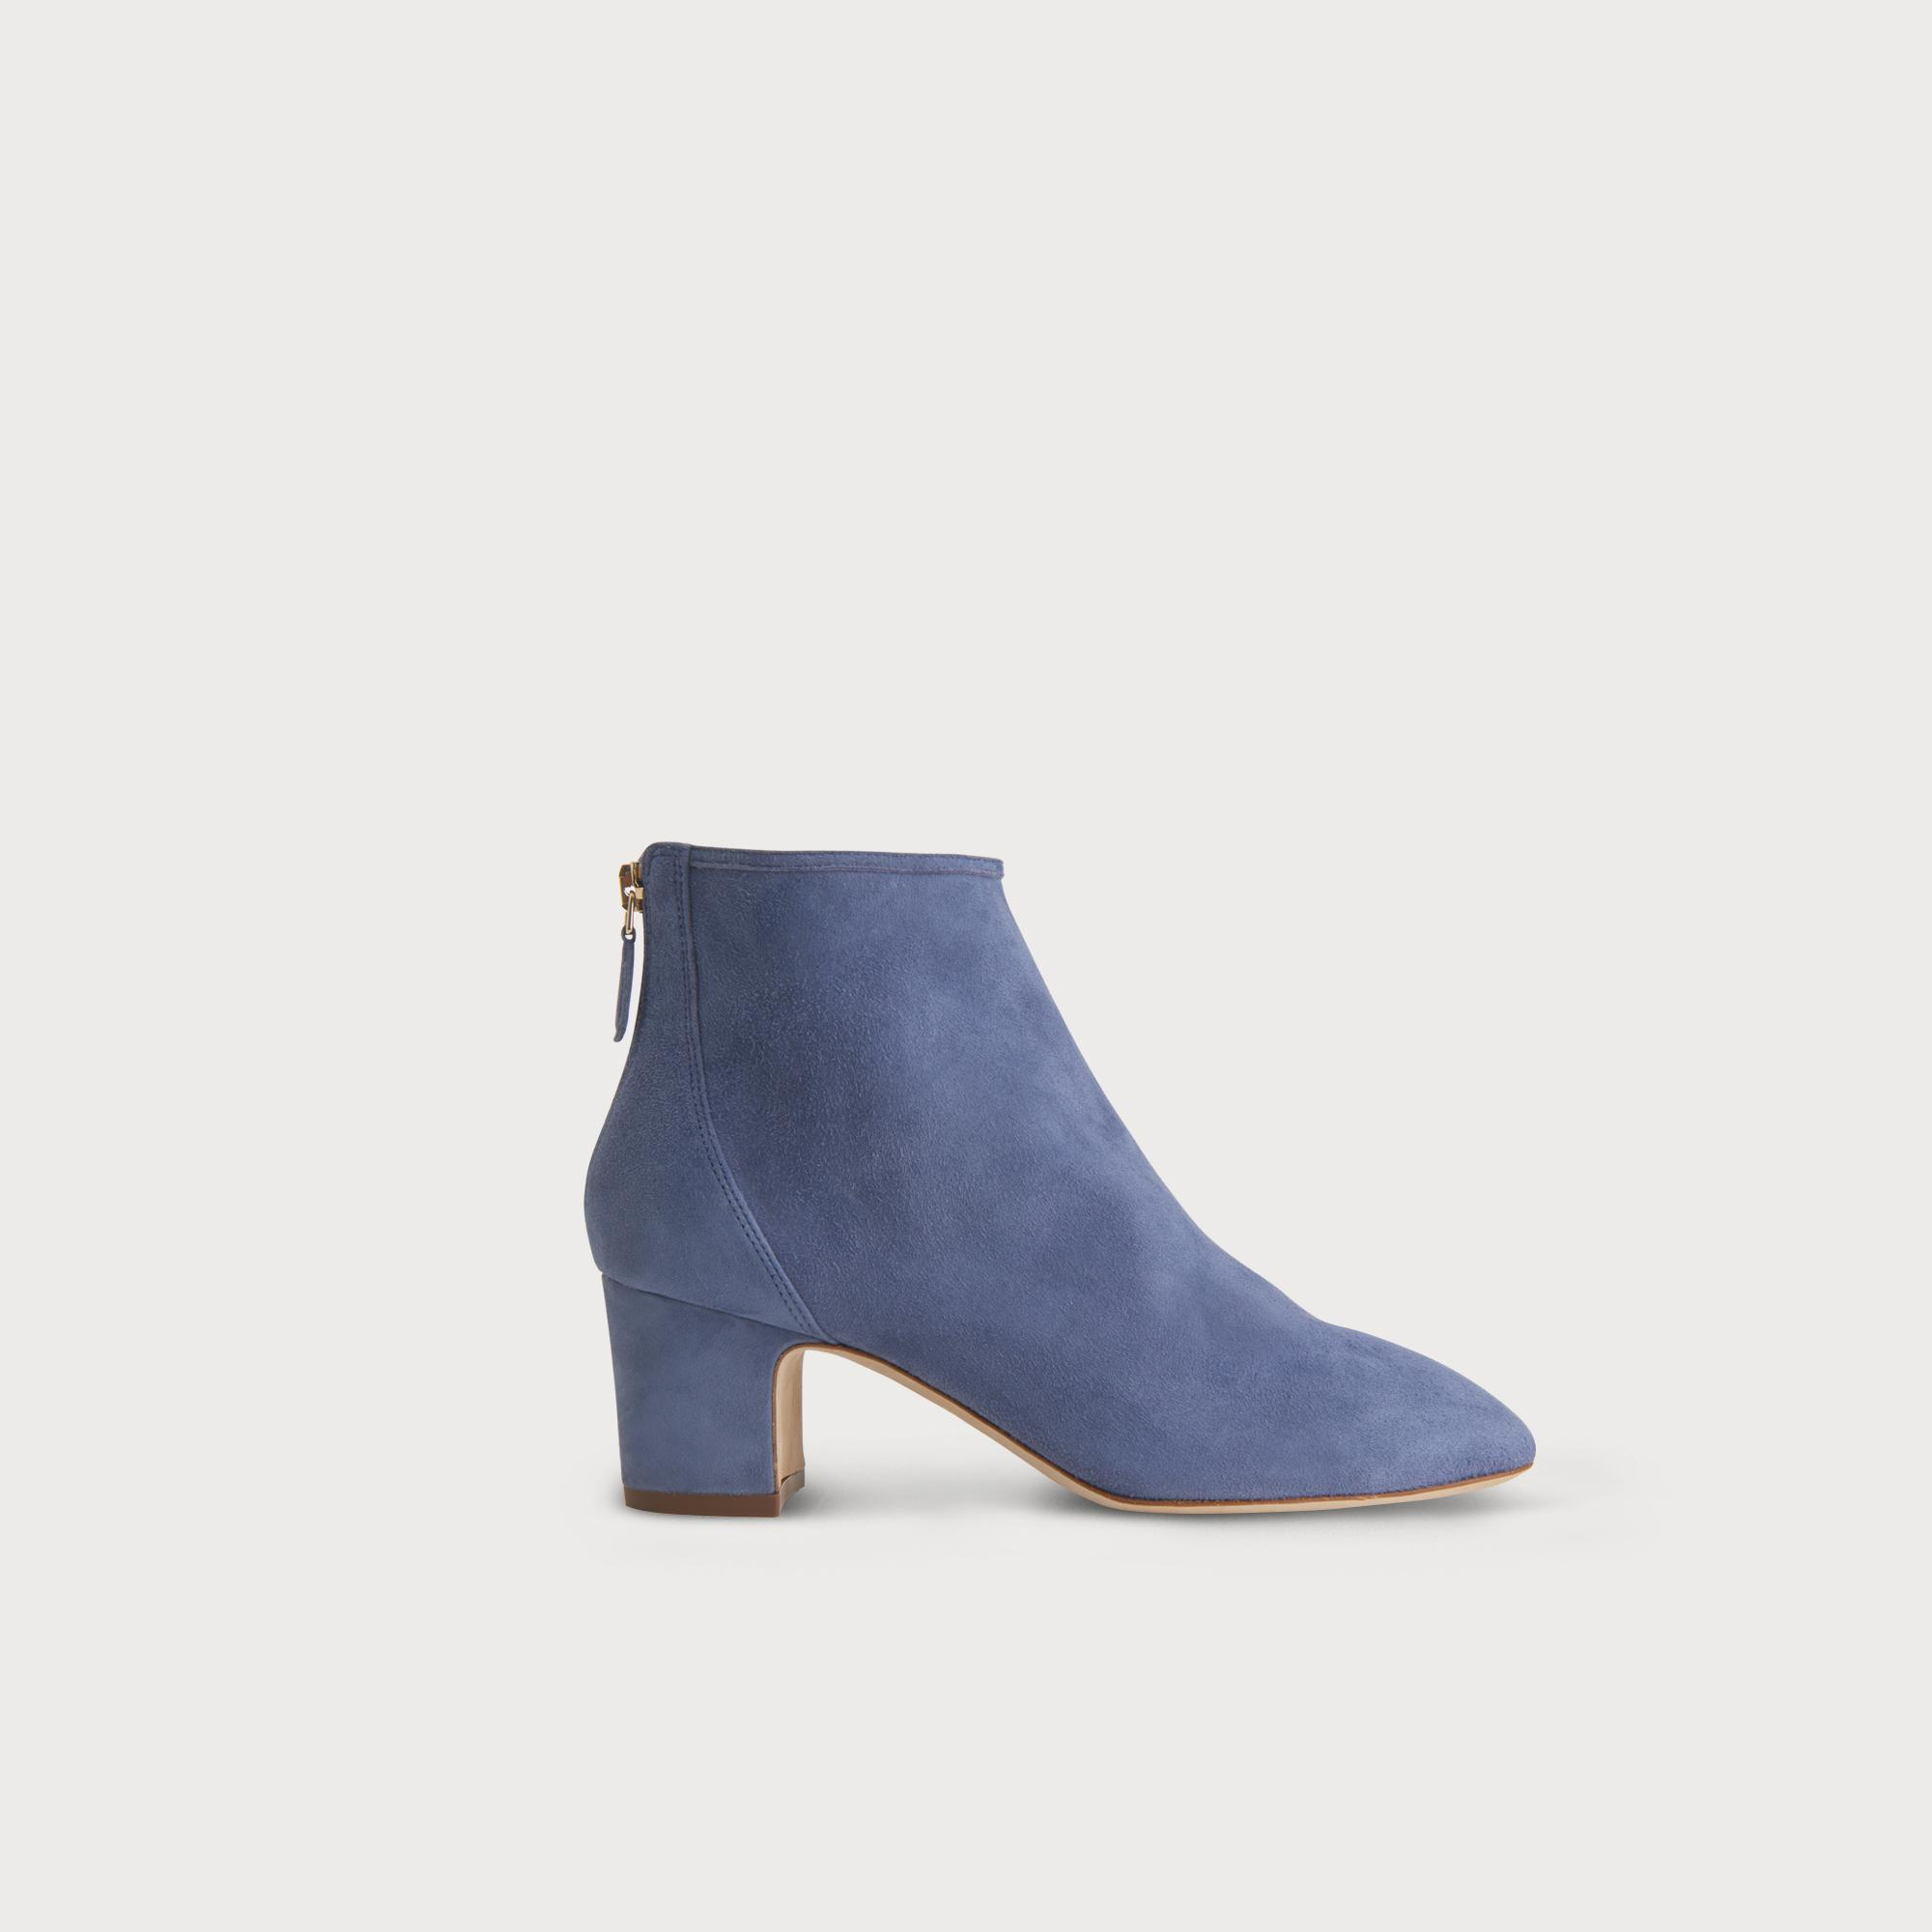 Alyss Powder Blue Suede Ankle Boots